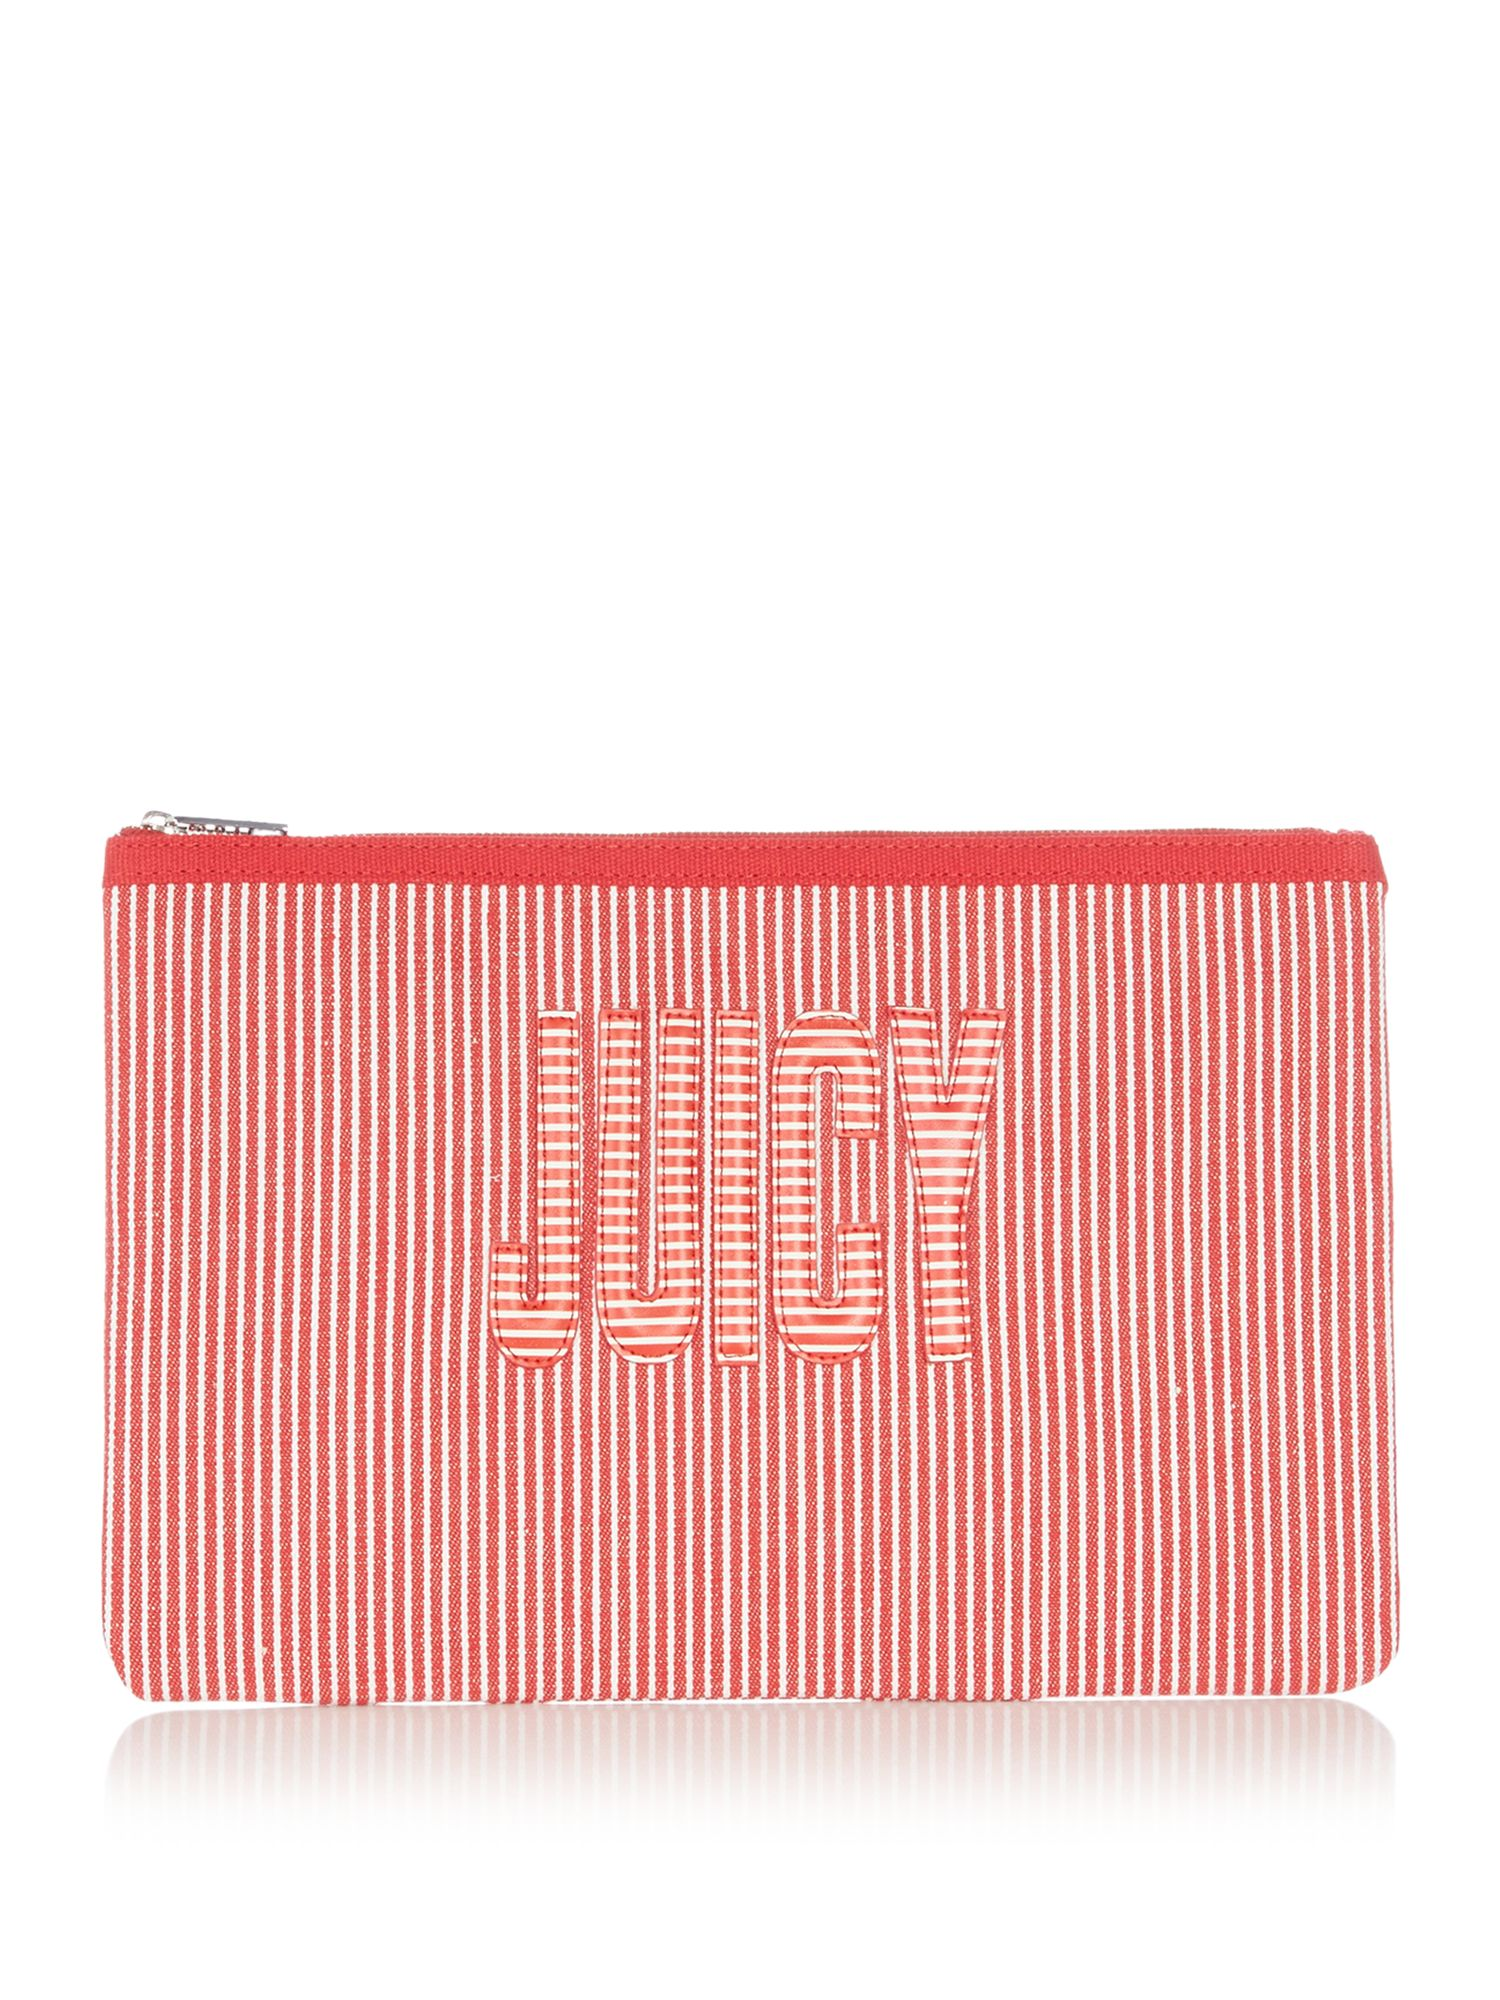 Juicy by Juicy Couture Zoey large pouch, Red